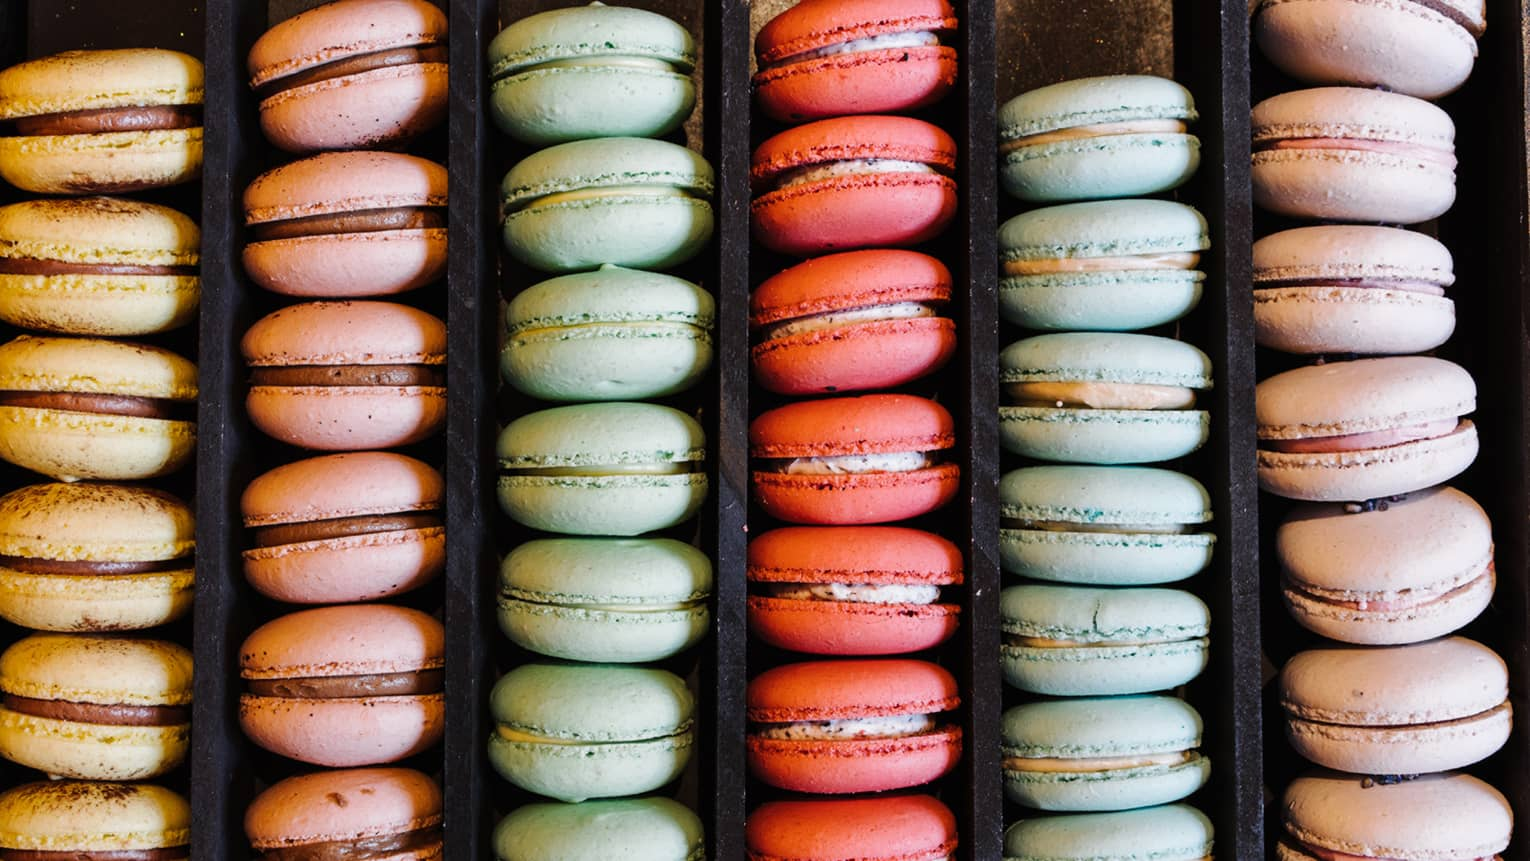 Rows of colourful macaron desserts